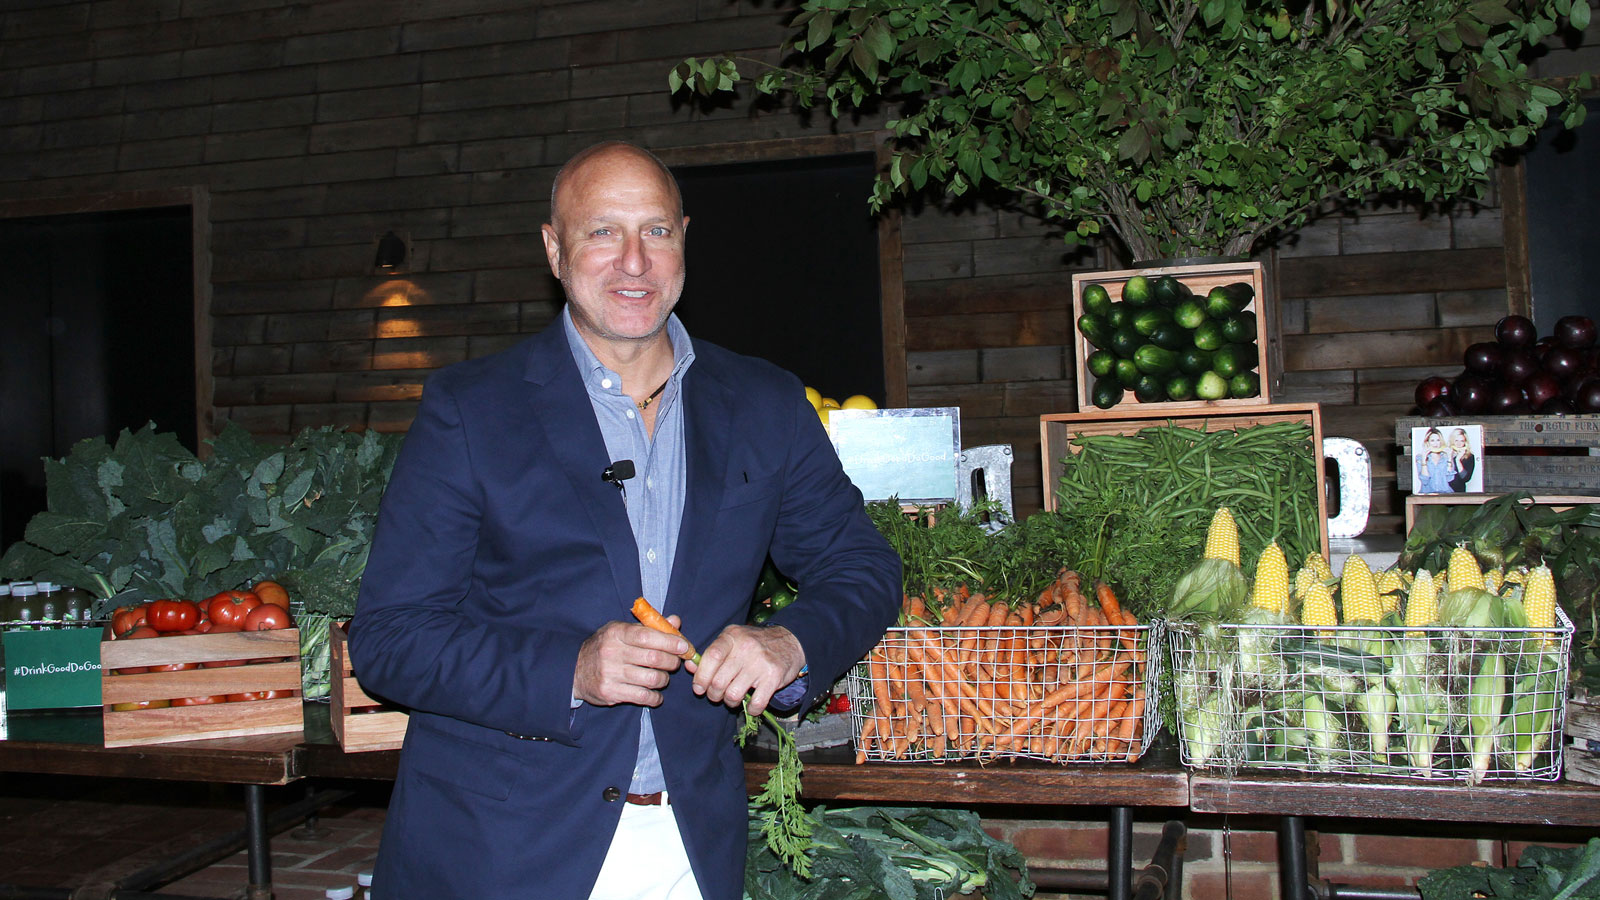 5 Things Tom Colicchio Learned While Gardening